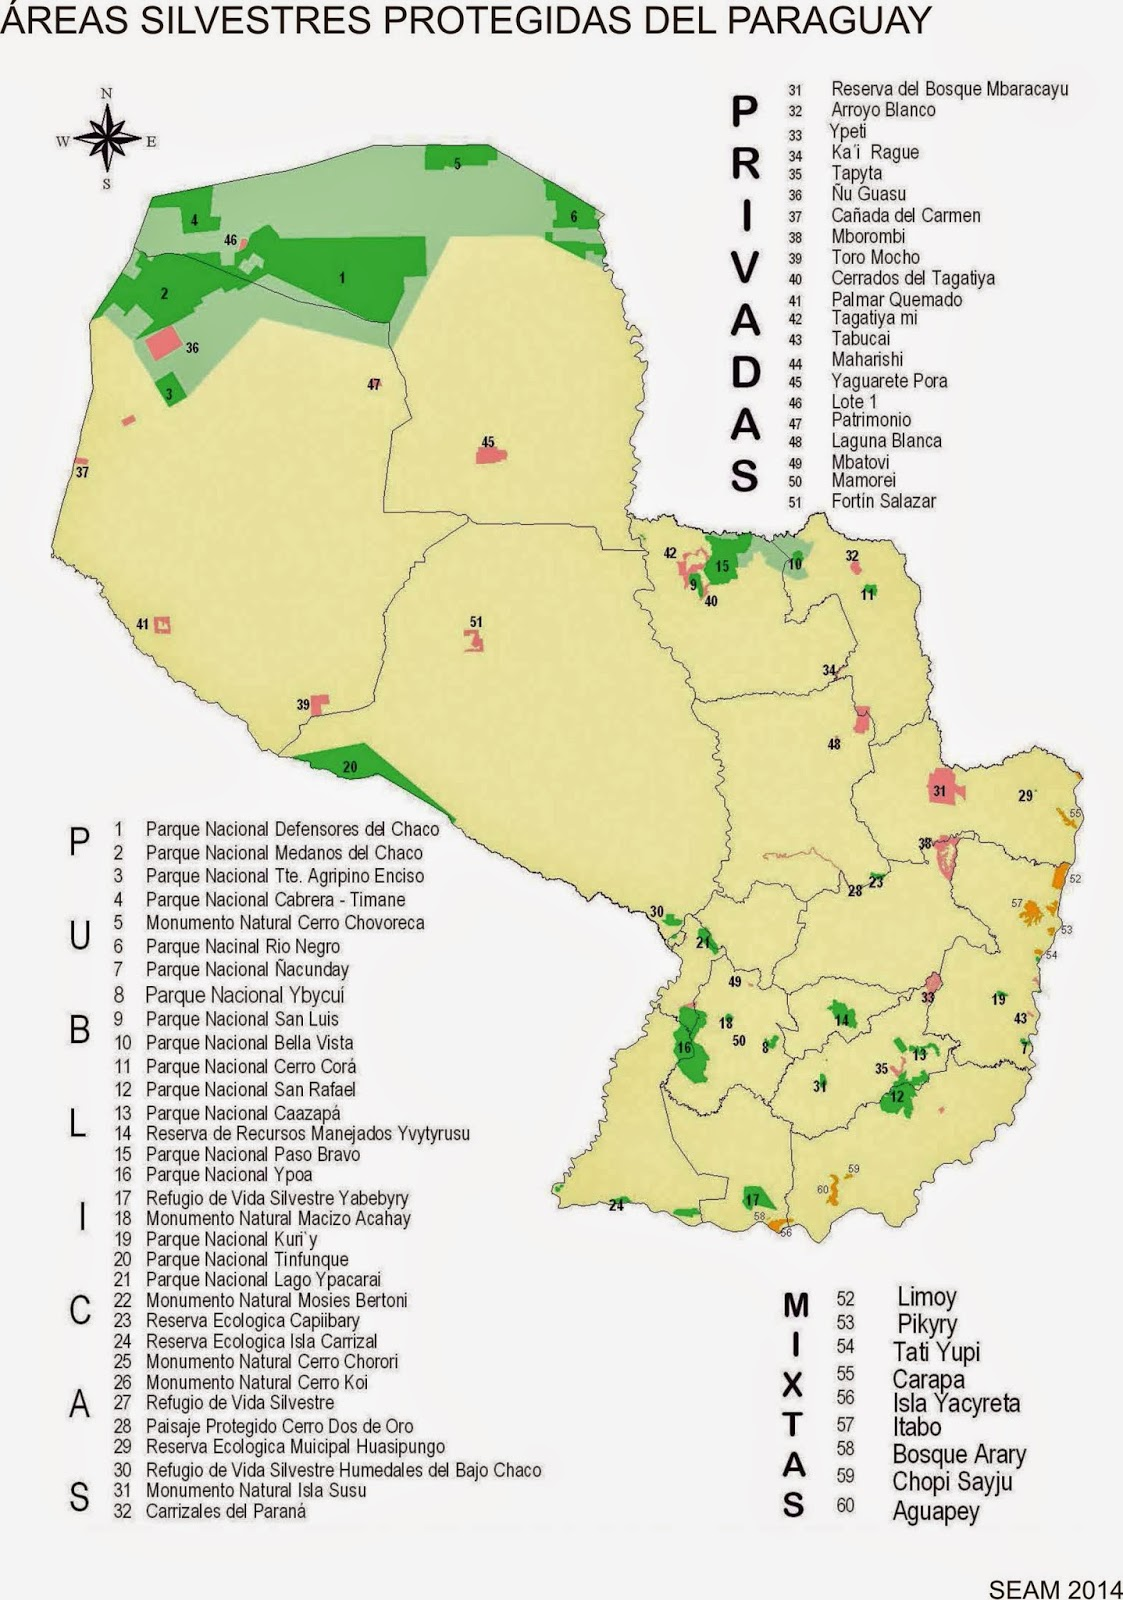 according to the map there are now 62 protected wild areas 32 public protected areas 21 private protected areas 9 mixed protected areas